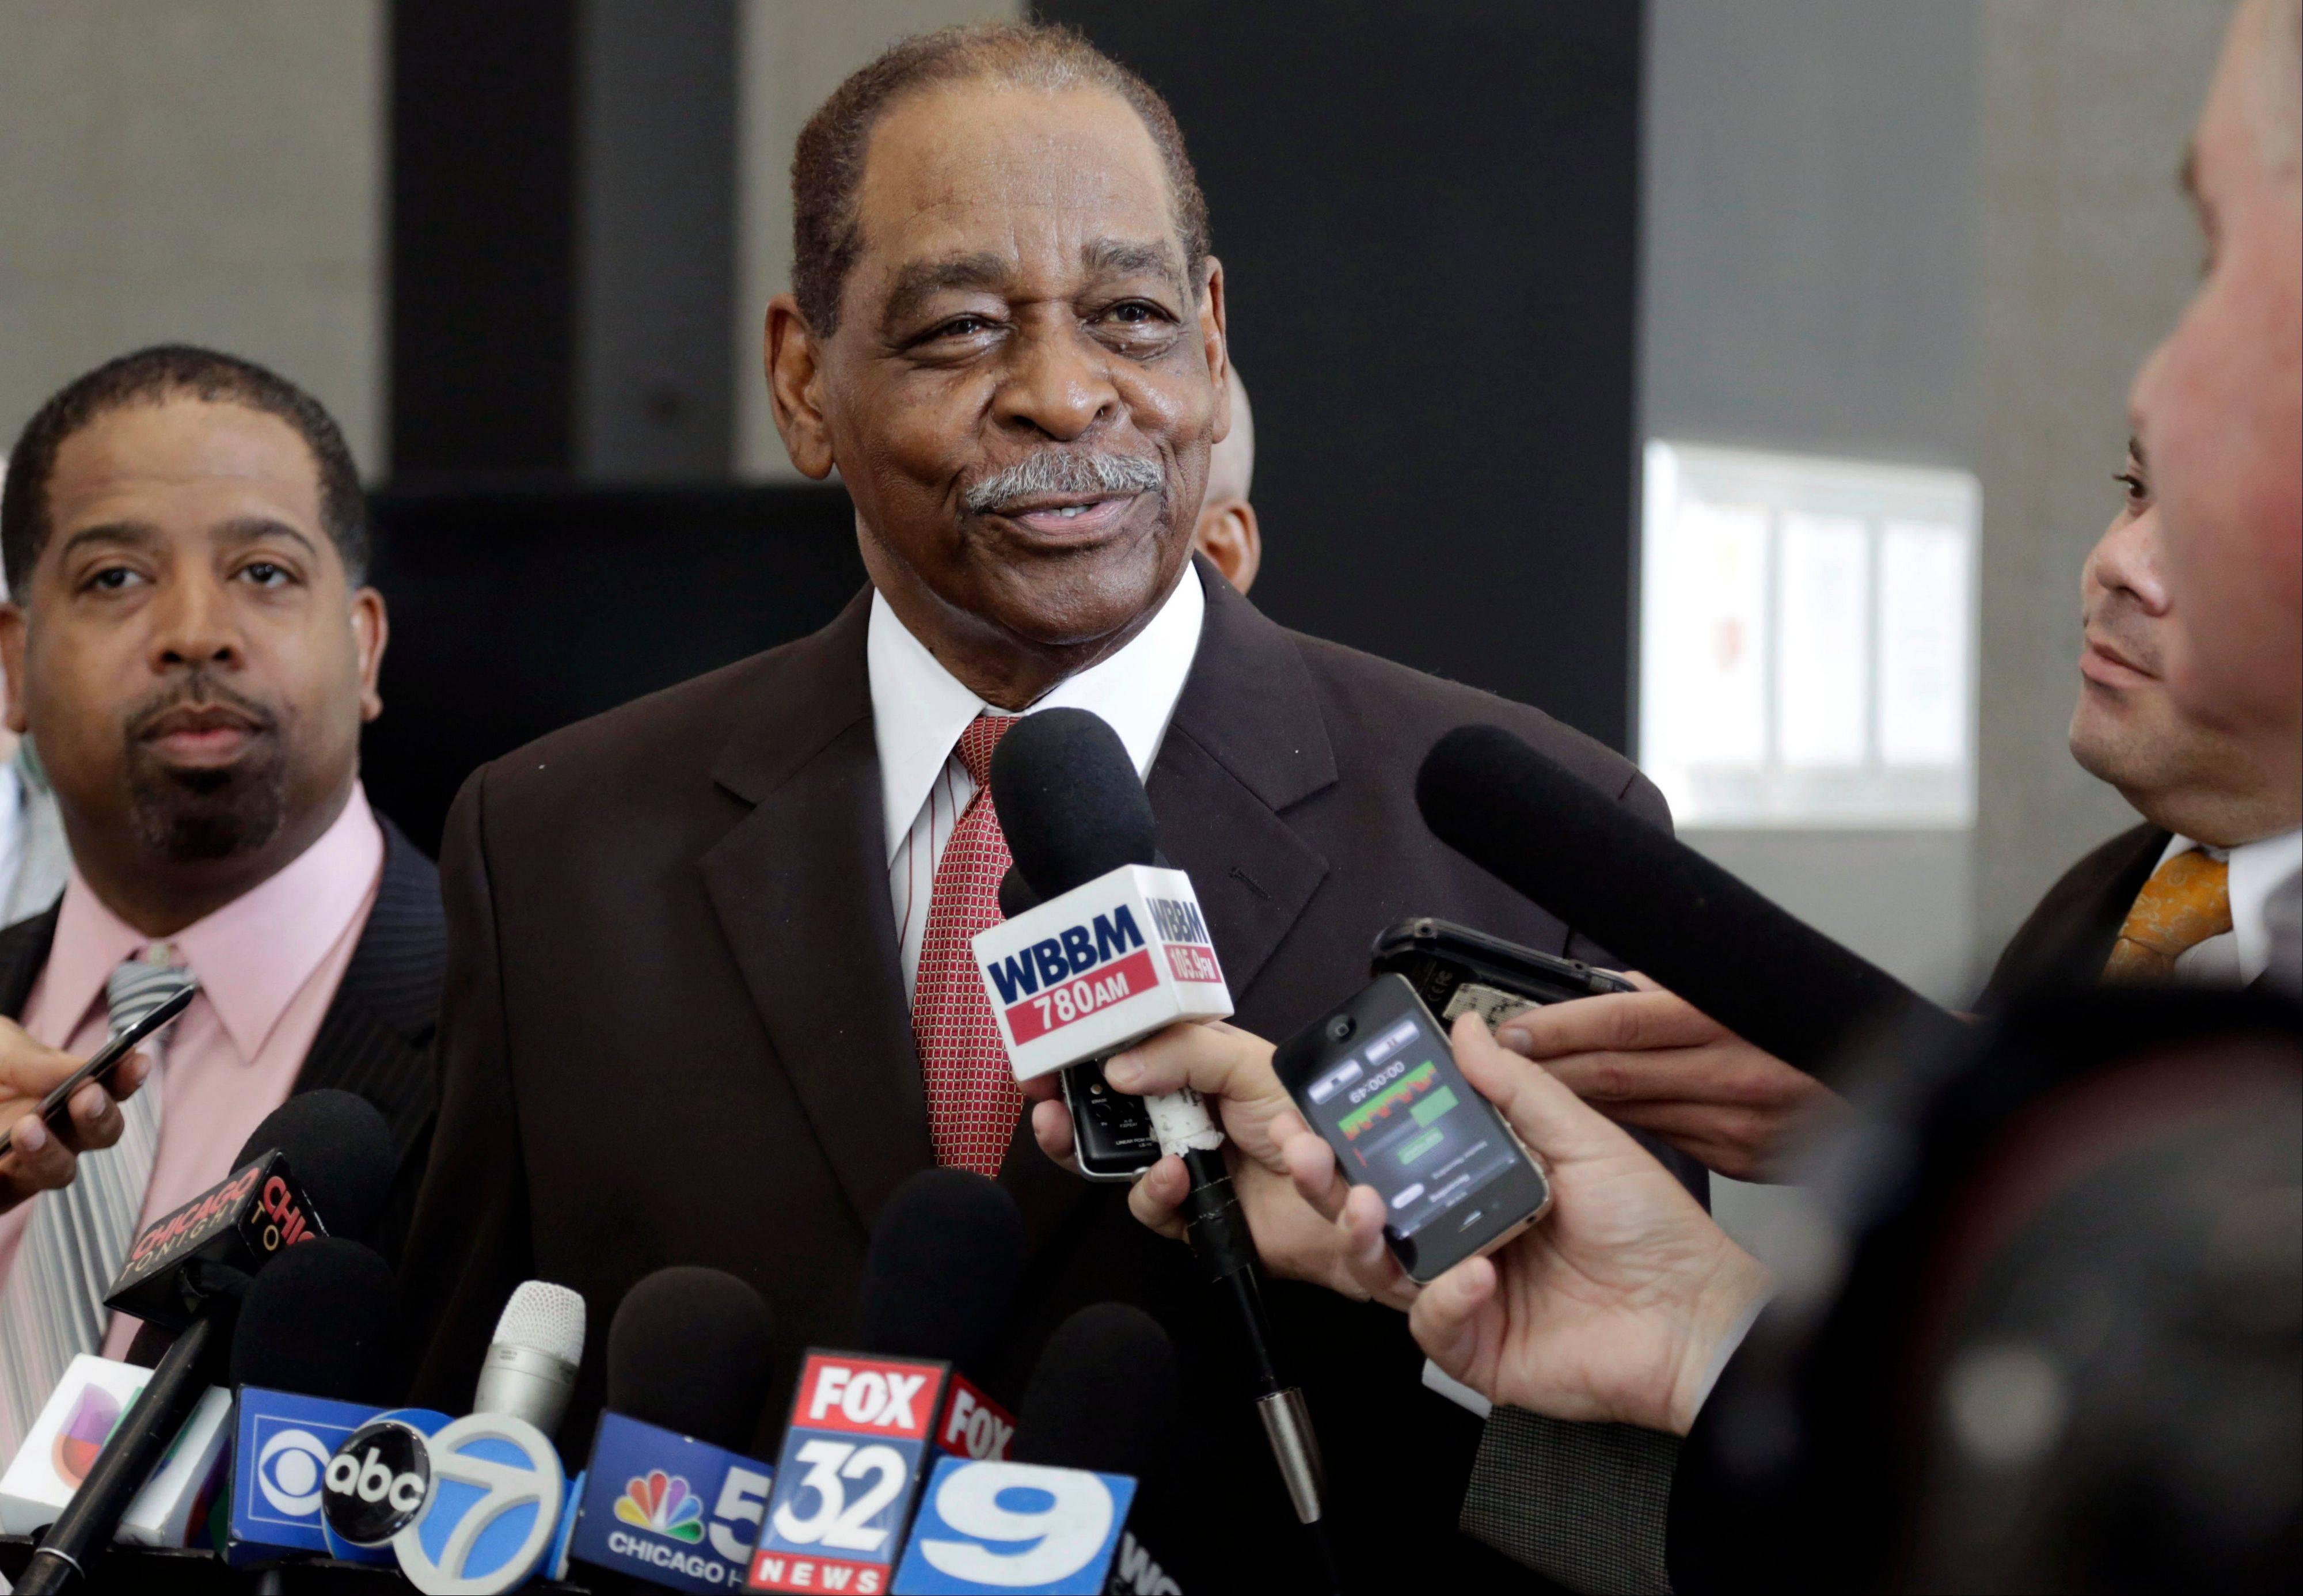 Former Cook County Commissioner William Beavers was sentenced Wednesday to six months in prison for tax evasion. He described himself as �a hero in my community.�